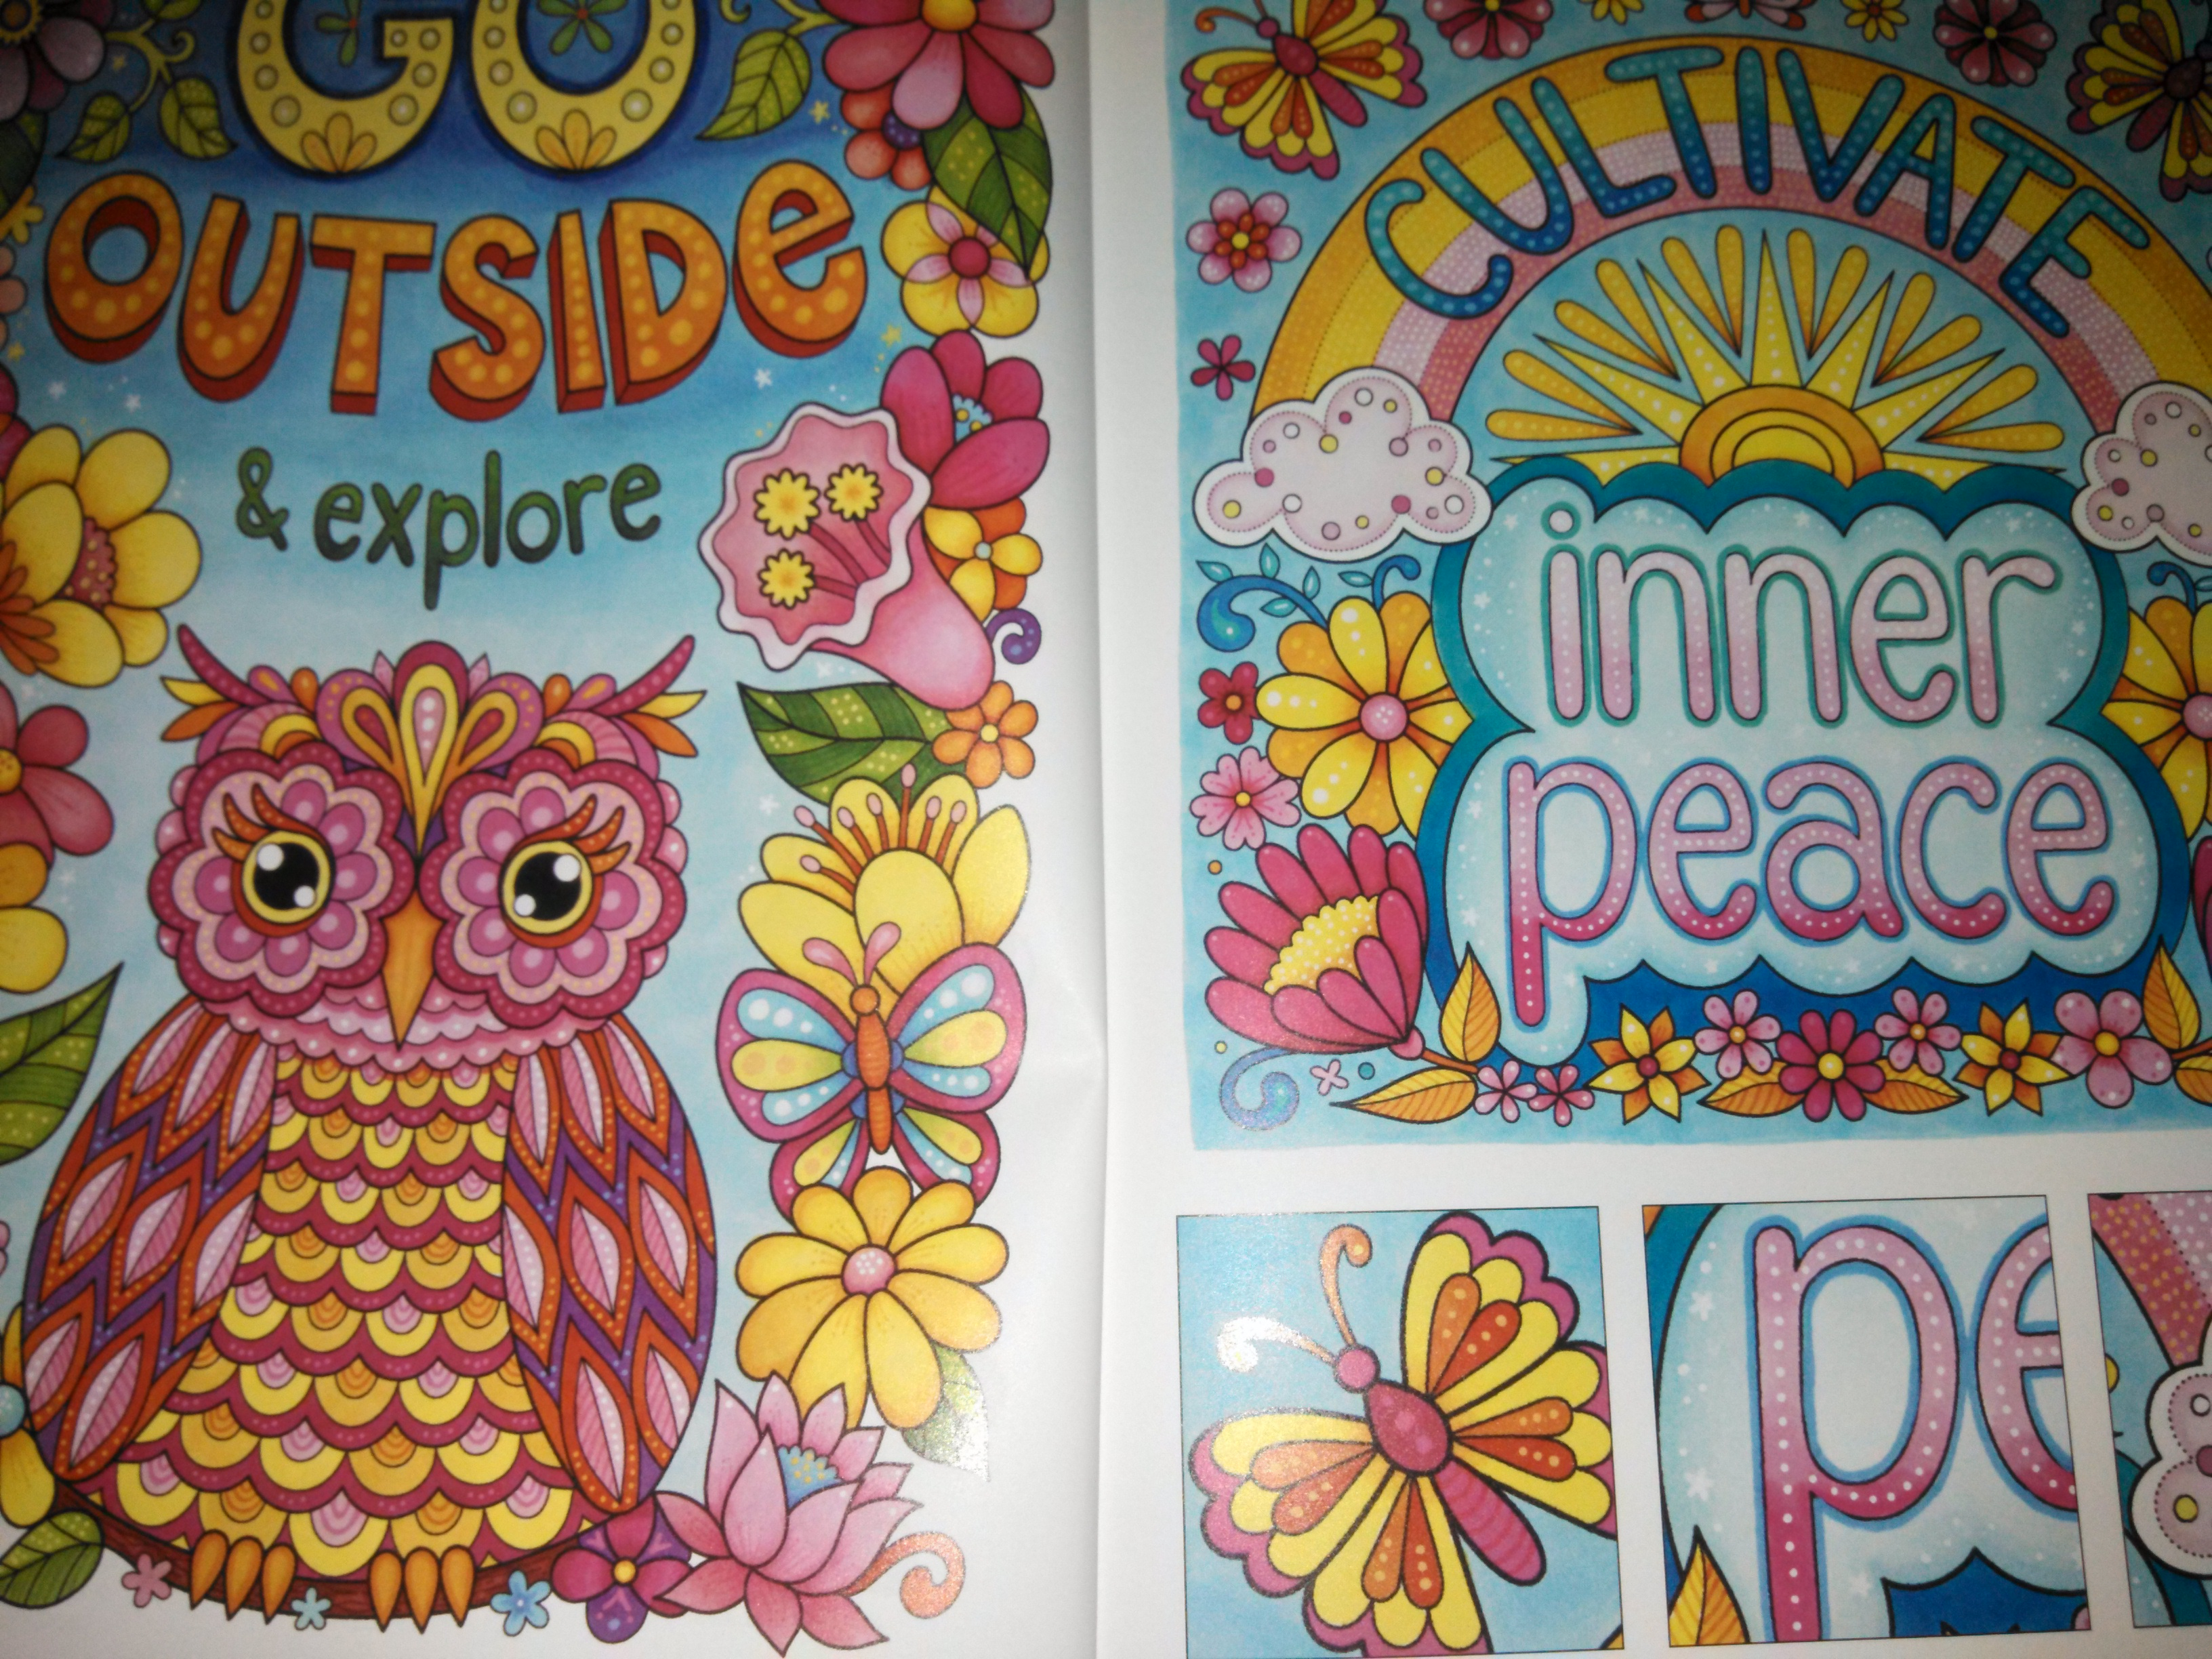 More Good Vibes Coloring Book Today I Choose Joy Review